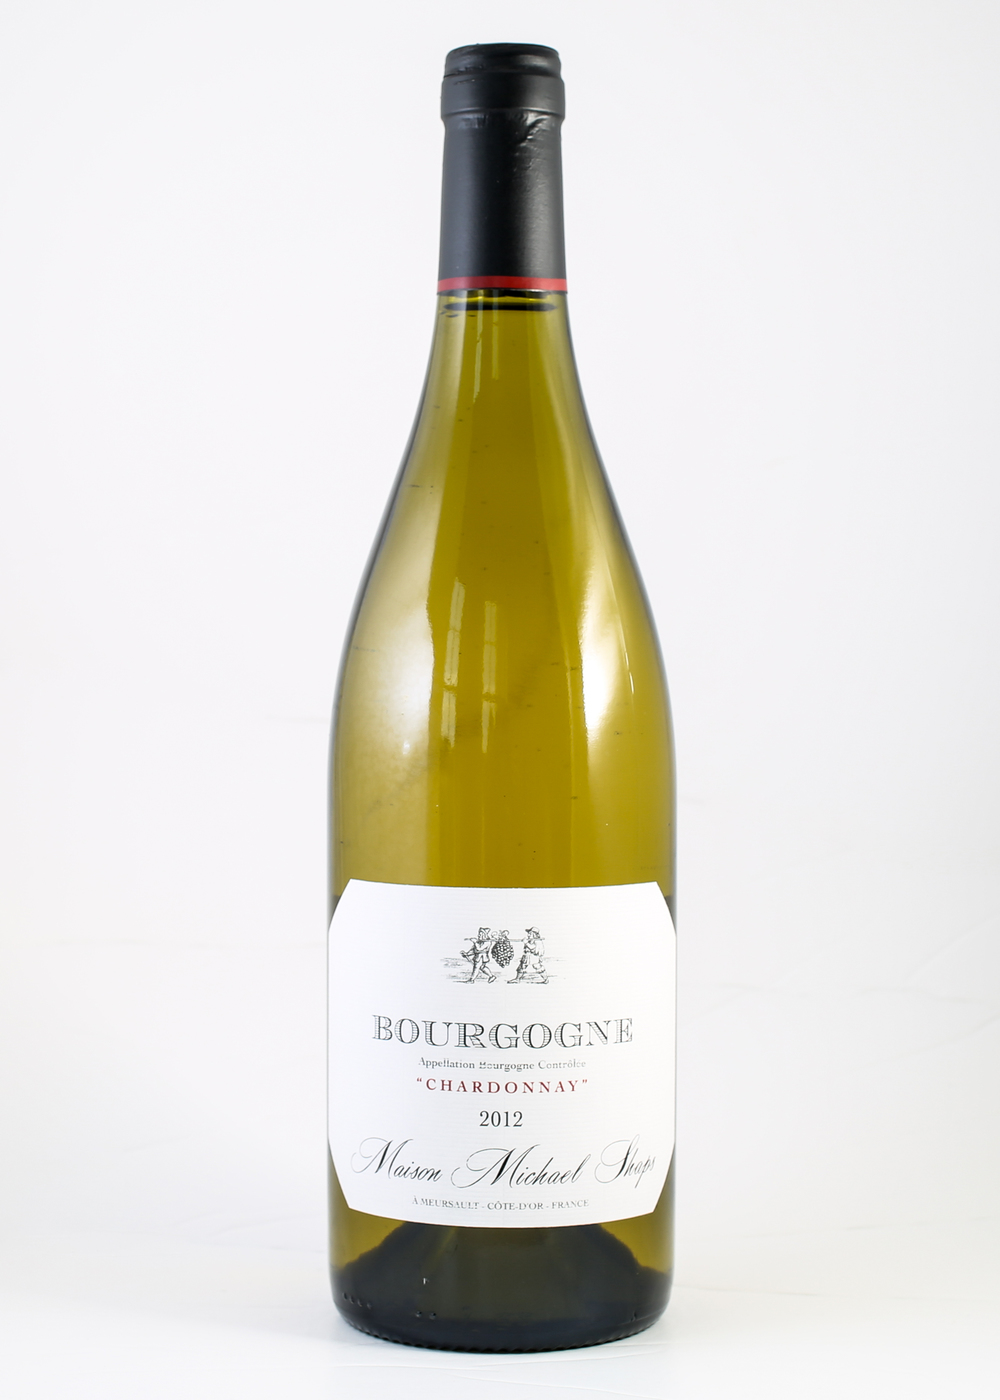 Maison Shaps 2014 Bourgogne Chardonnay  $24 Grown in the Cote Chalonnaise. The vineyard site produces a more fruit-forward style with lively citrus and pear notes. The wine is made in neutral oak and aged for six months prior to bottling.